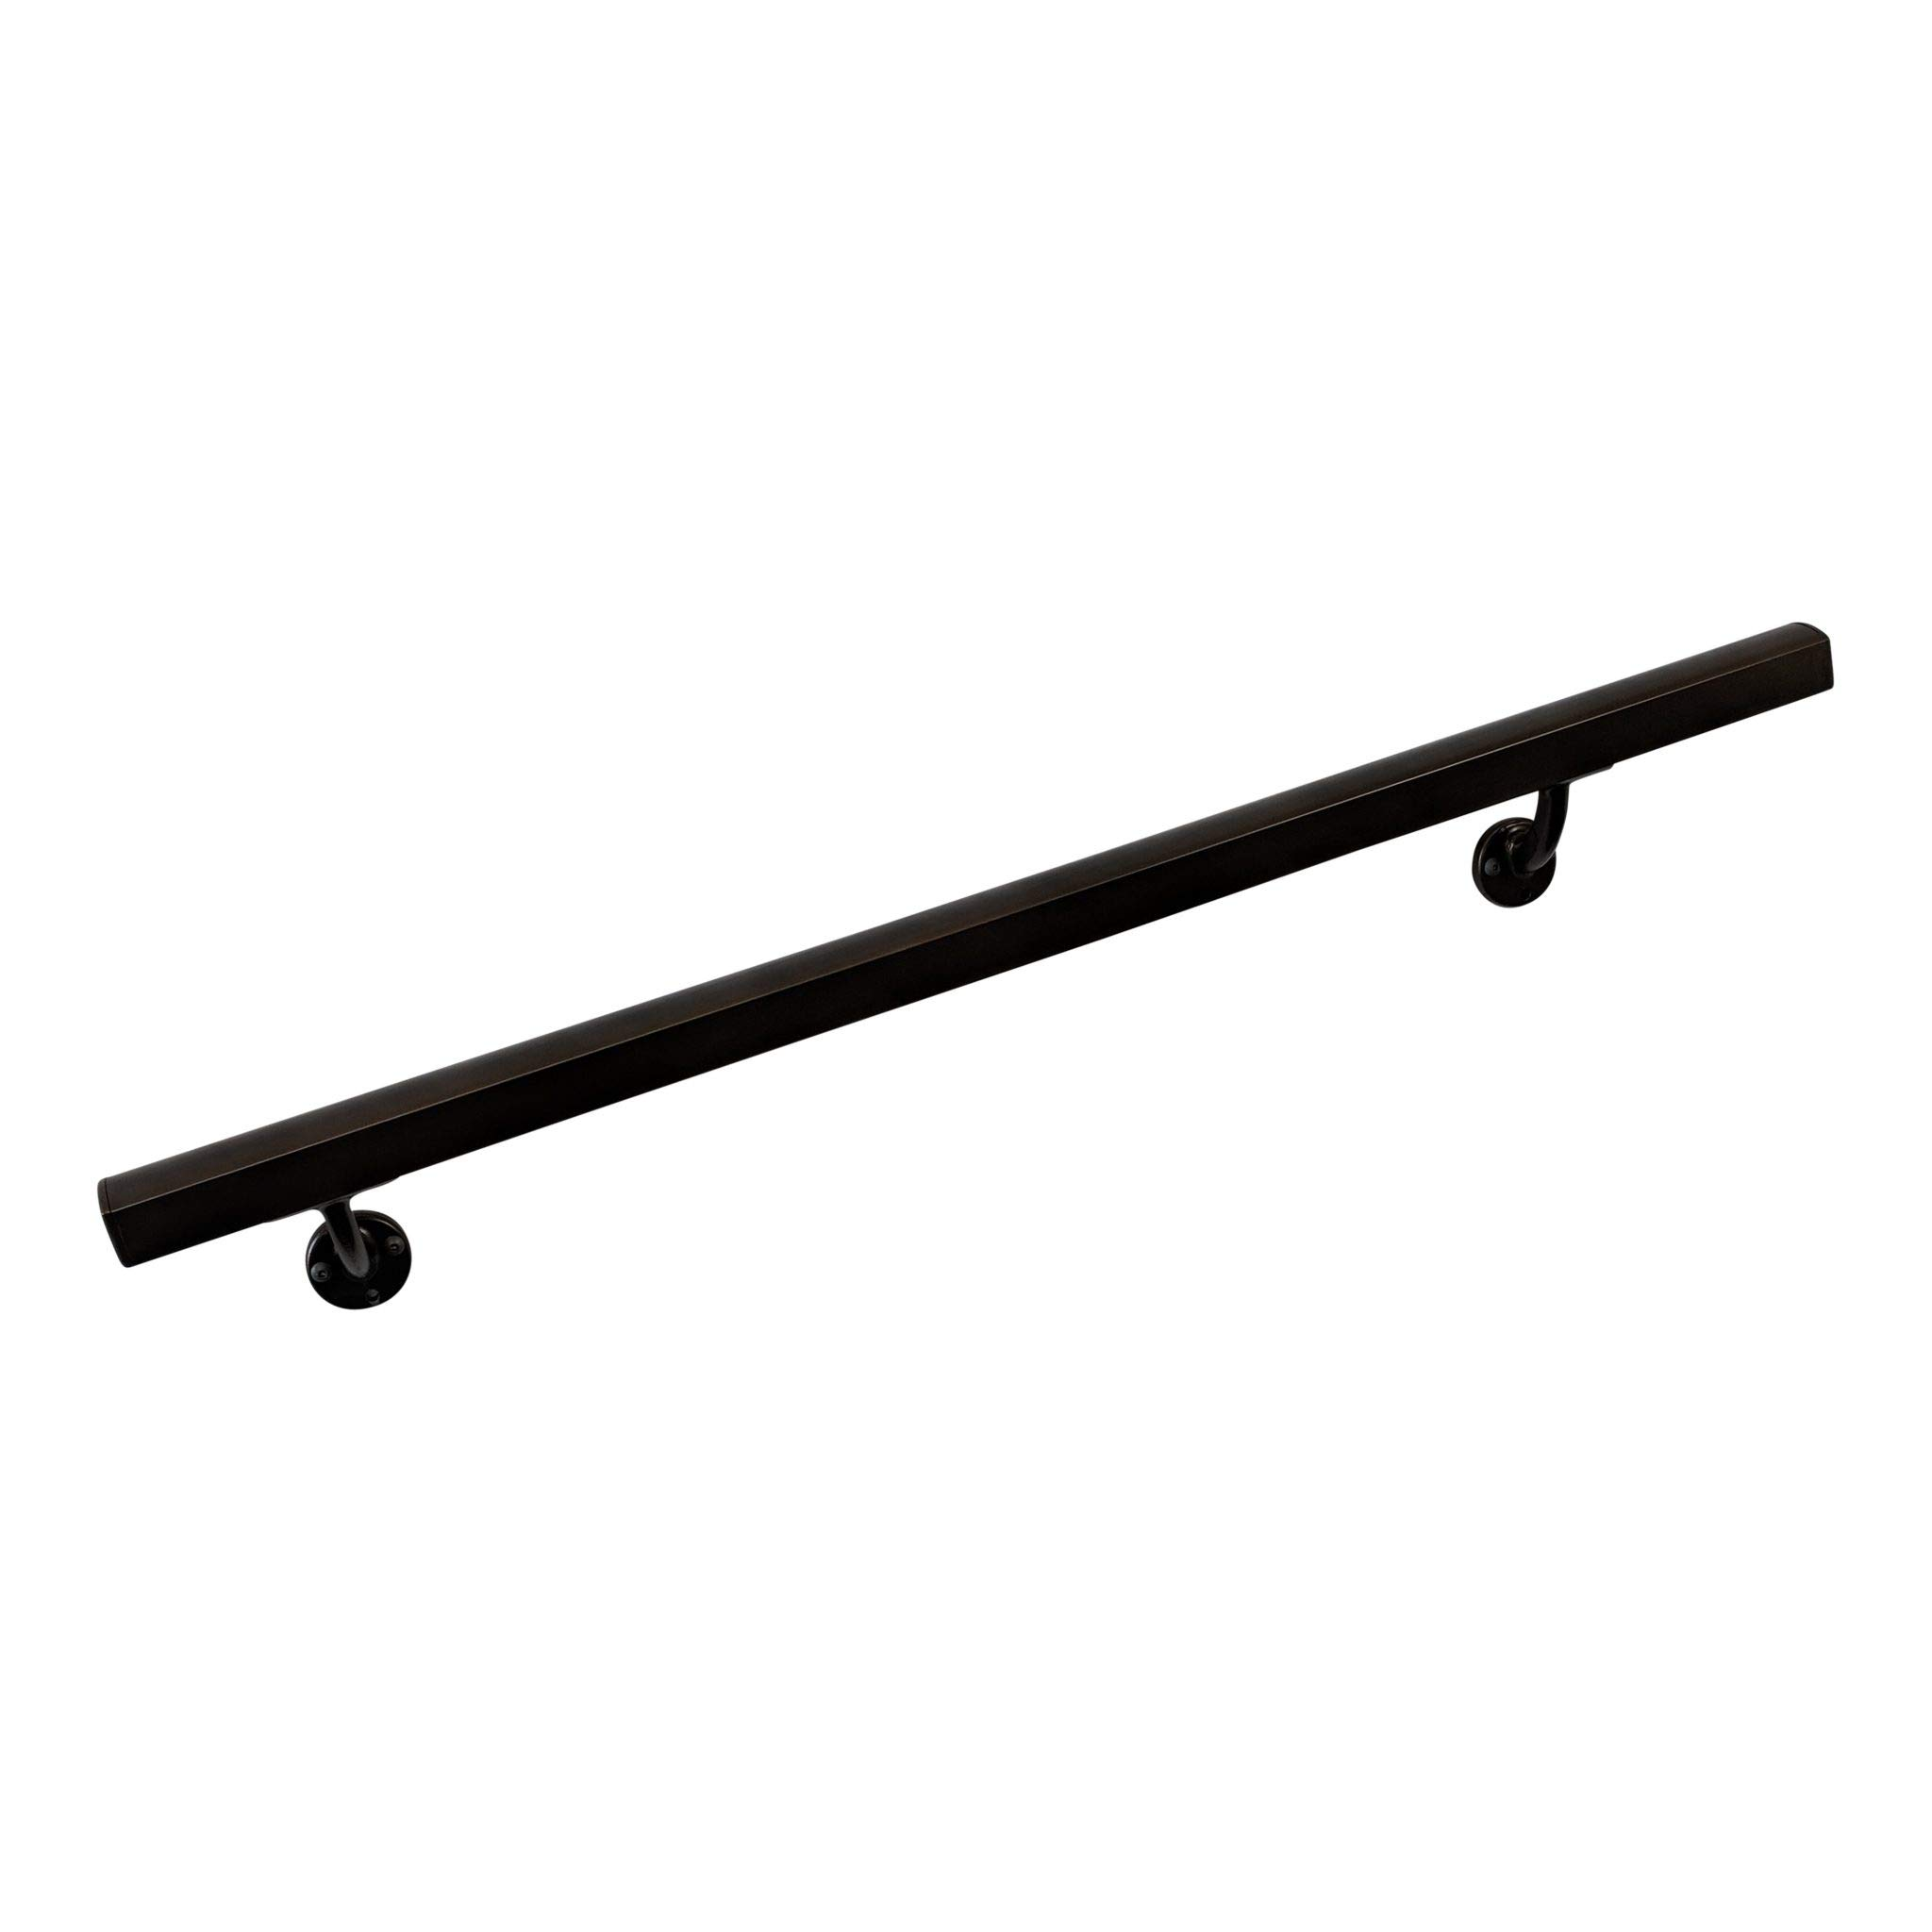 Aluminum Handrail Direct AHR 3' Wall Handrail with mounts - Dark Copper